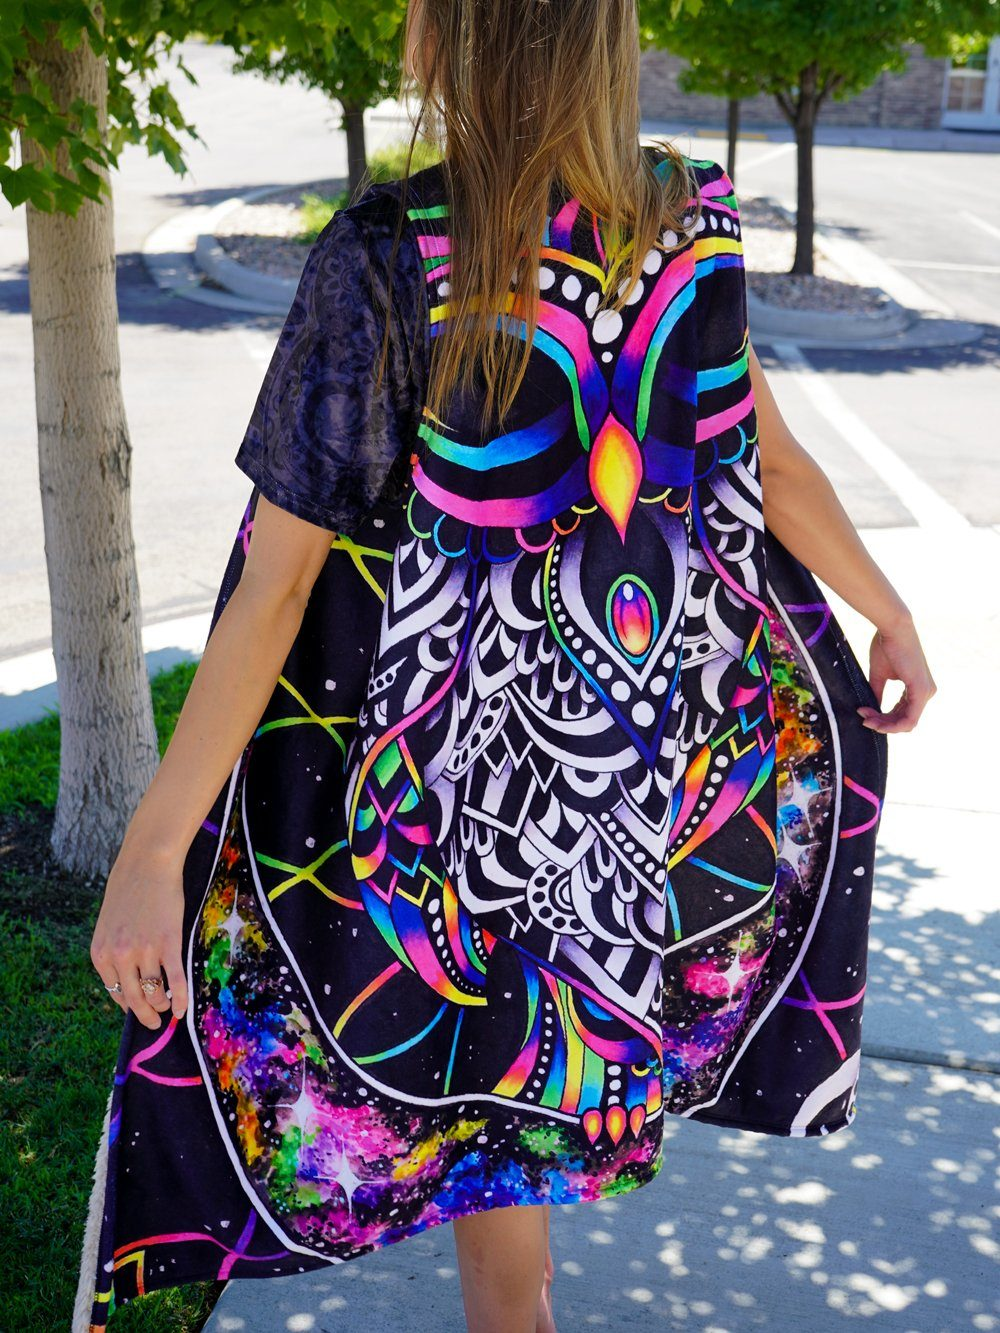 Electro Owl Summer Dream Cloak Dream Coat Electro Threads